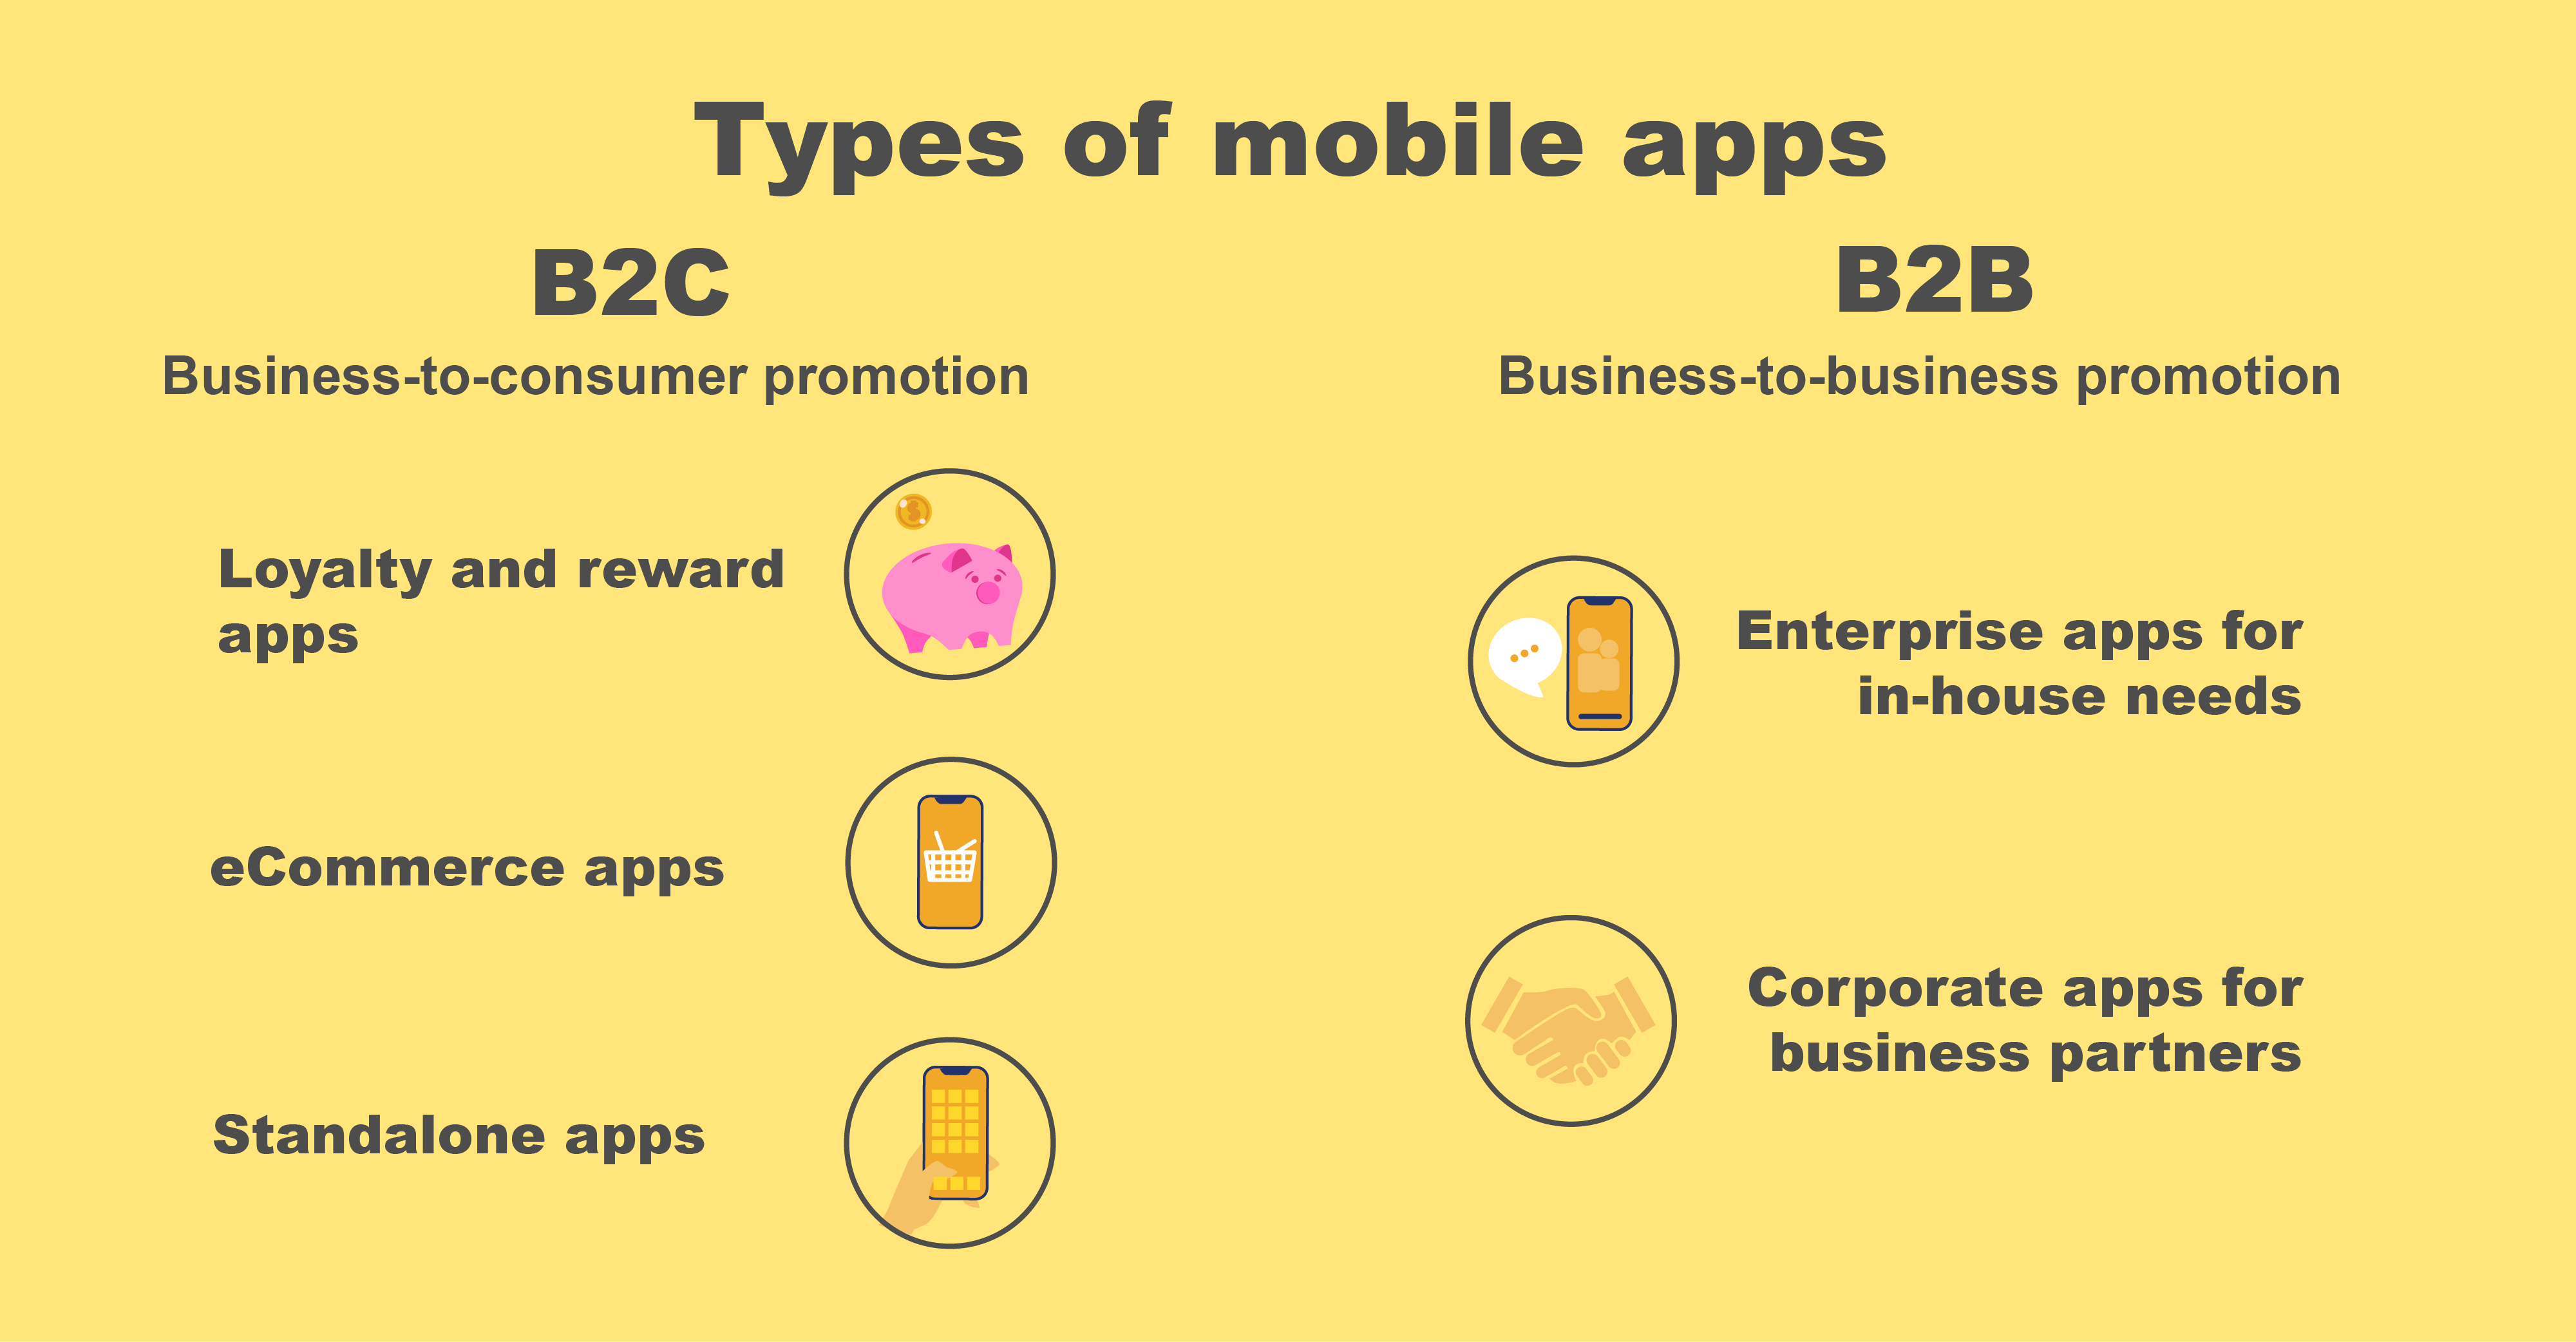 Types of mobile apps by target audience